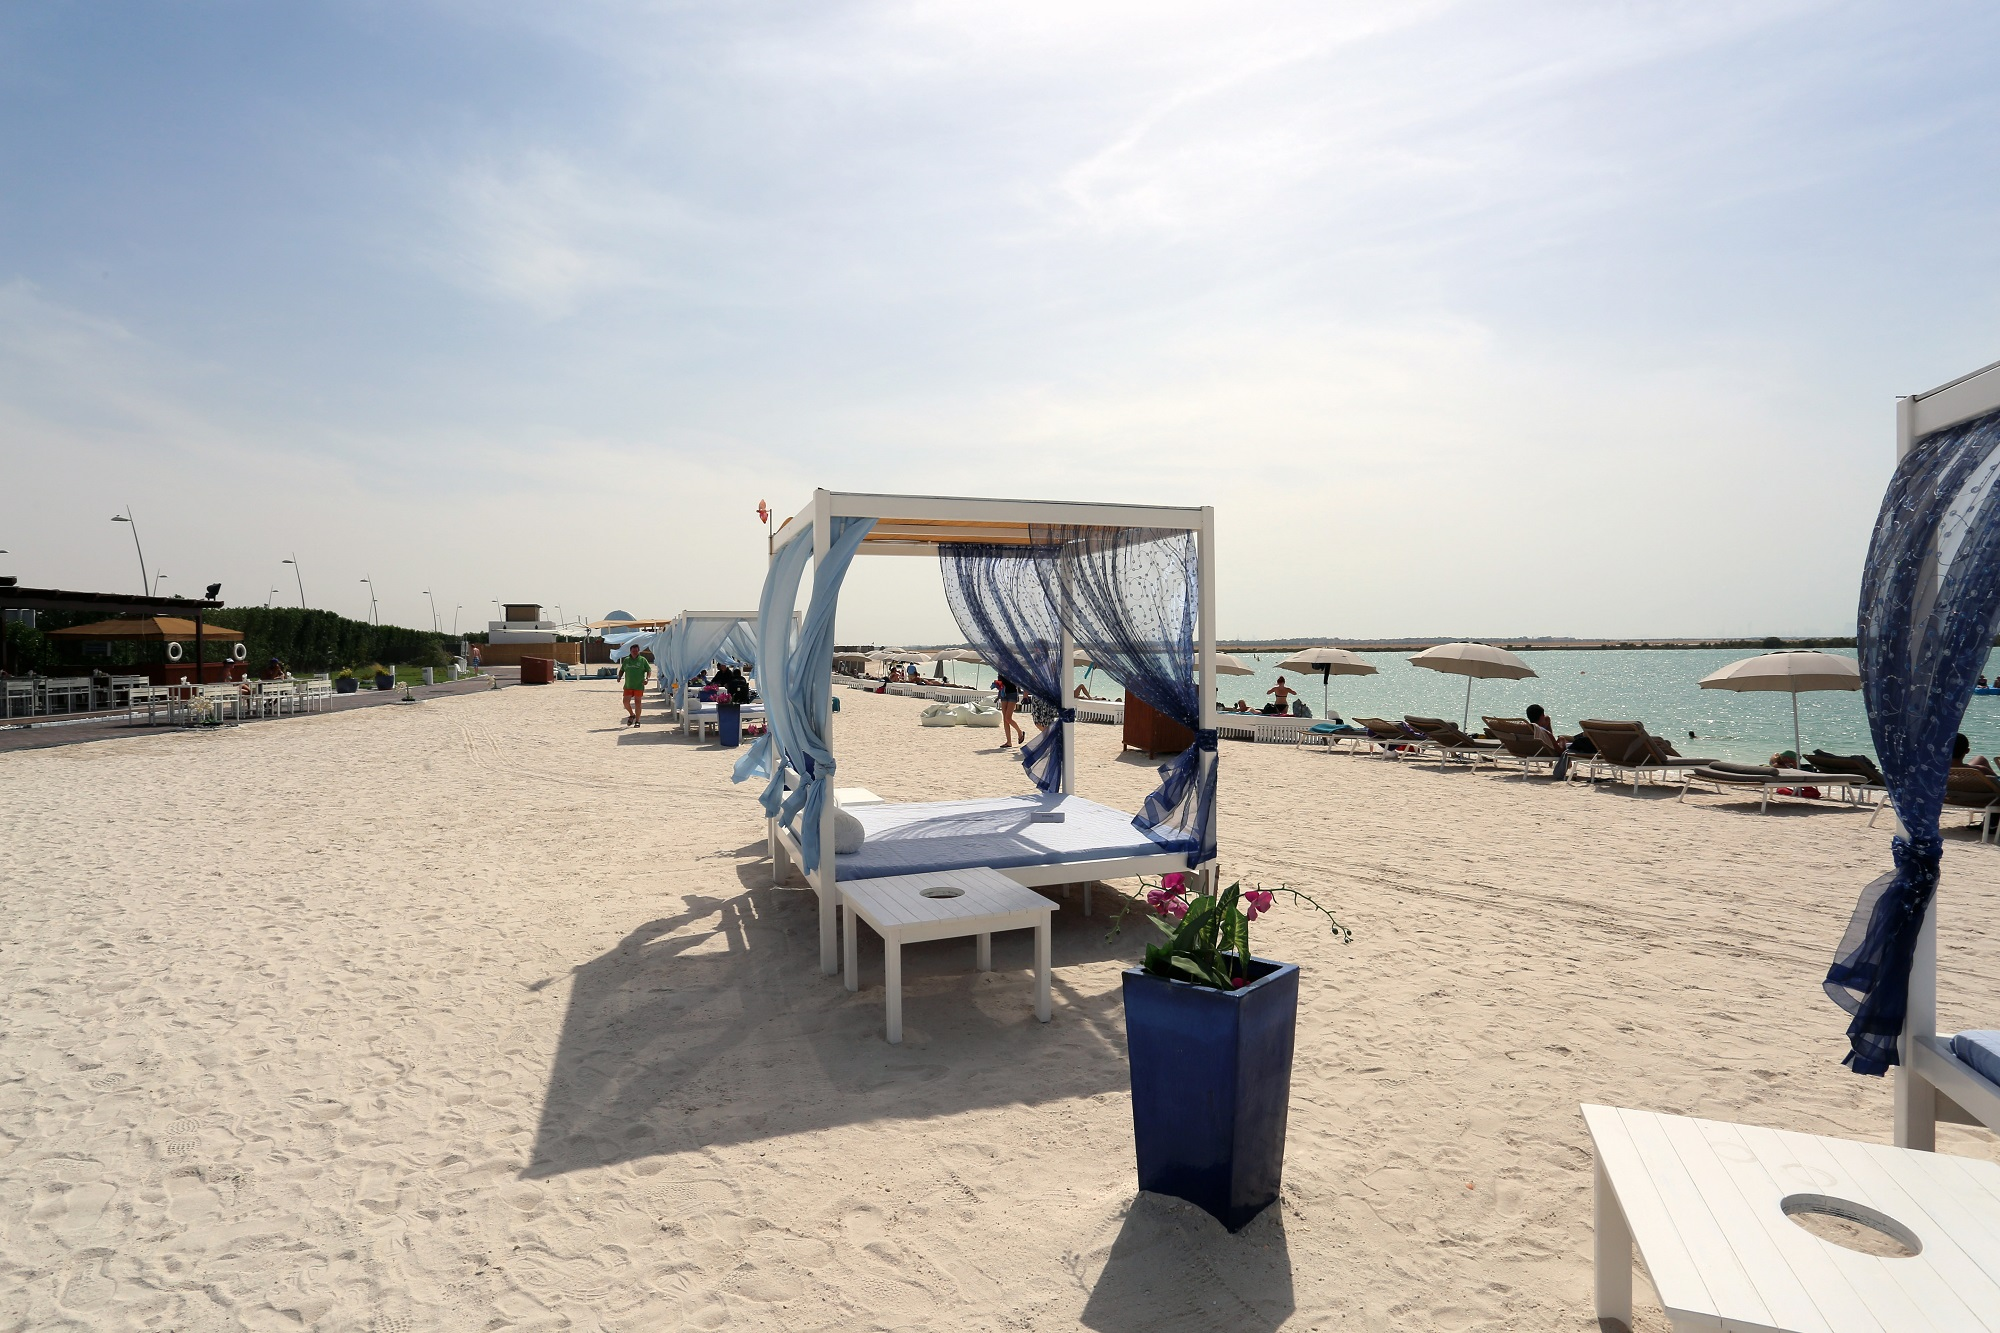 Der Yas Beach in Abu Dhabi